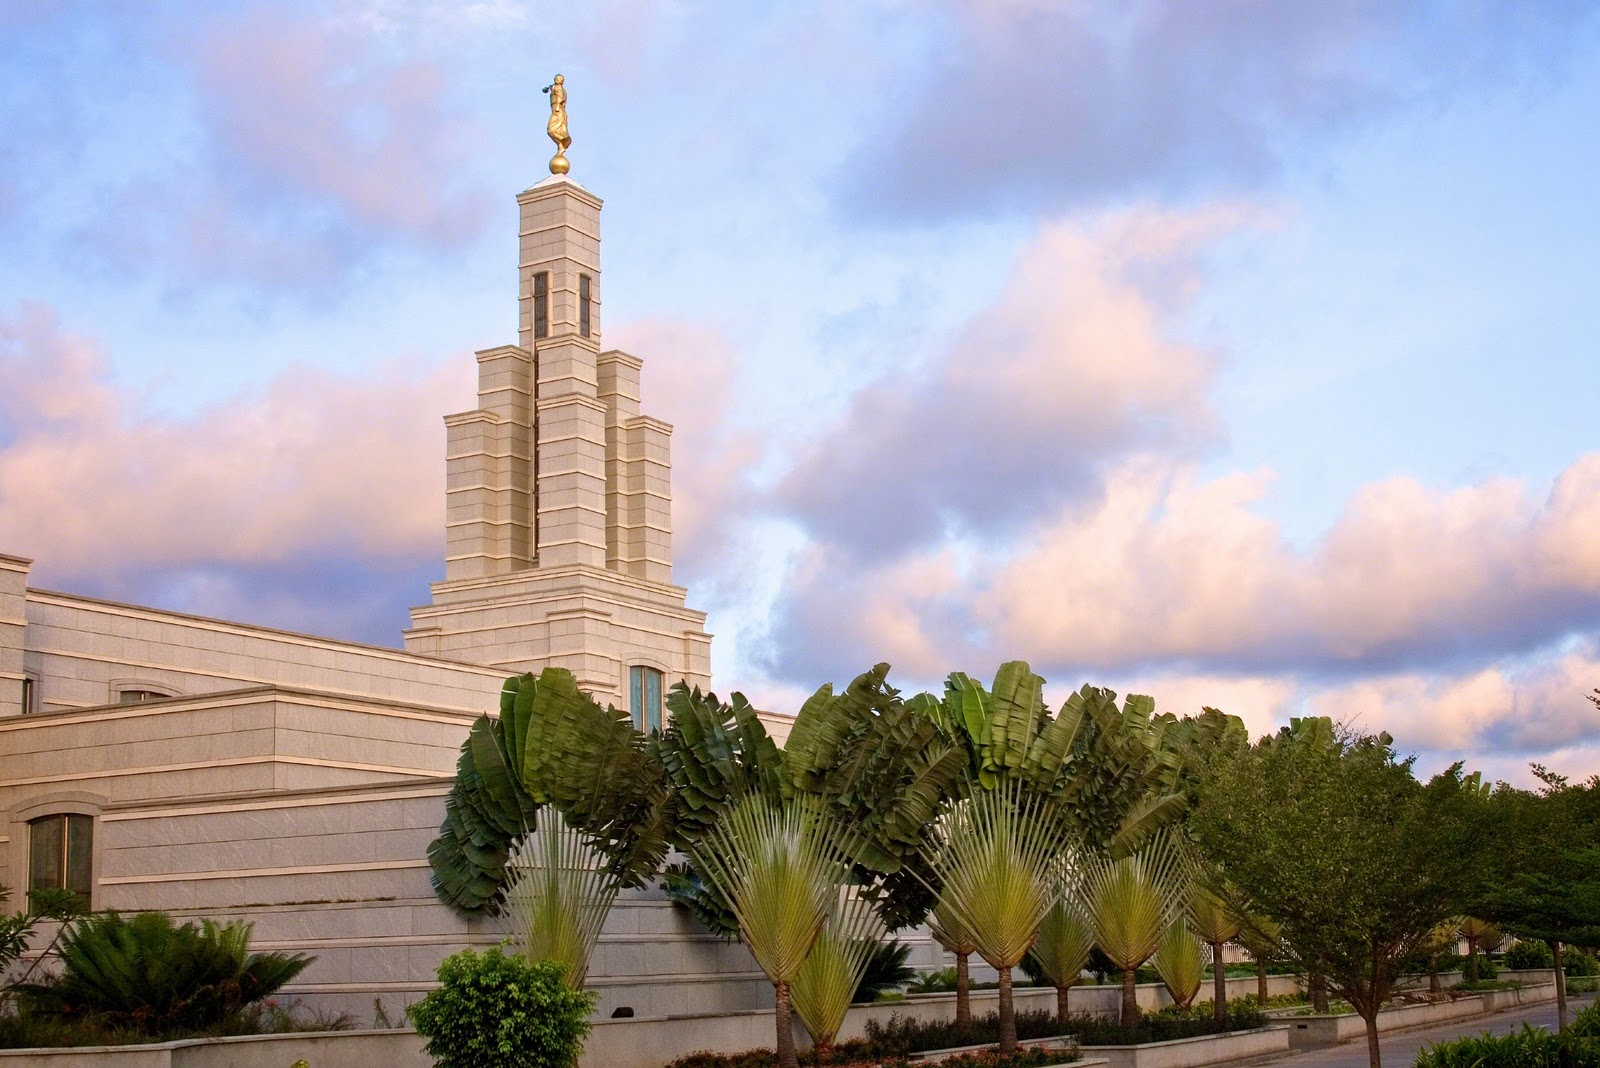 Wallpaper wallpaper lds - Lds temple wallpaper ...